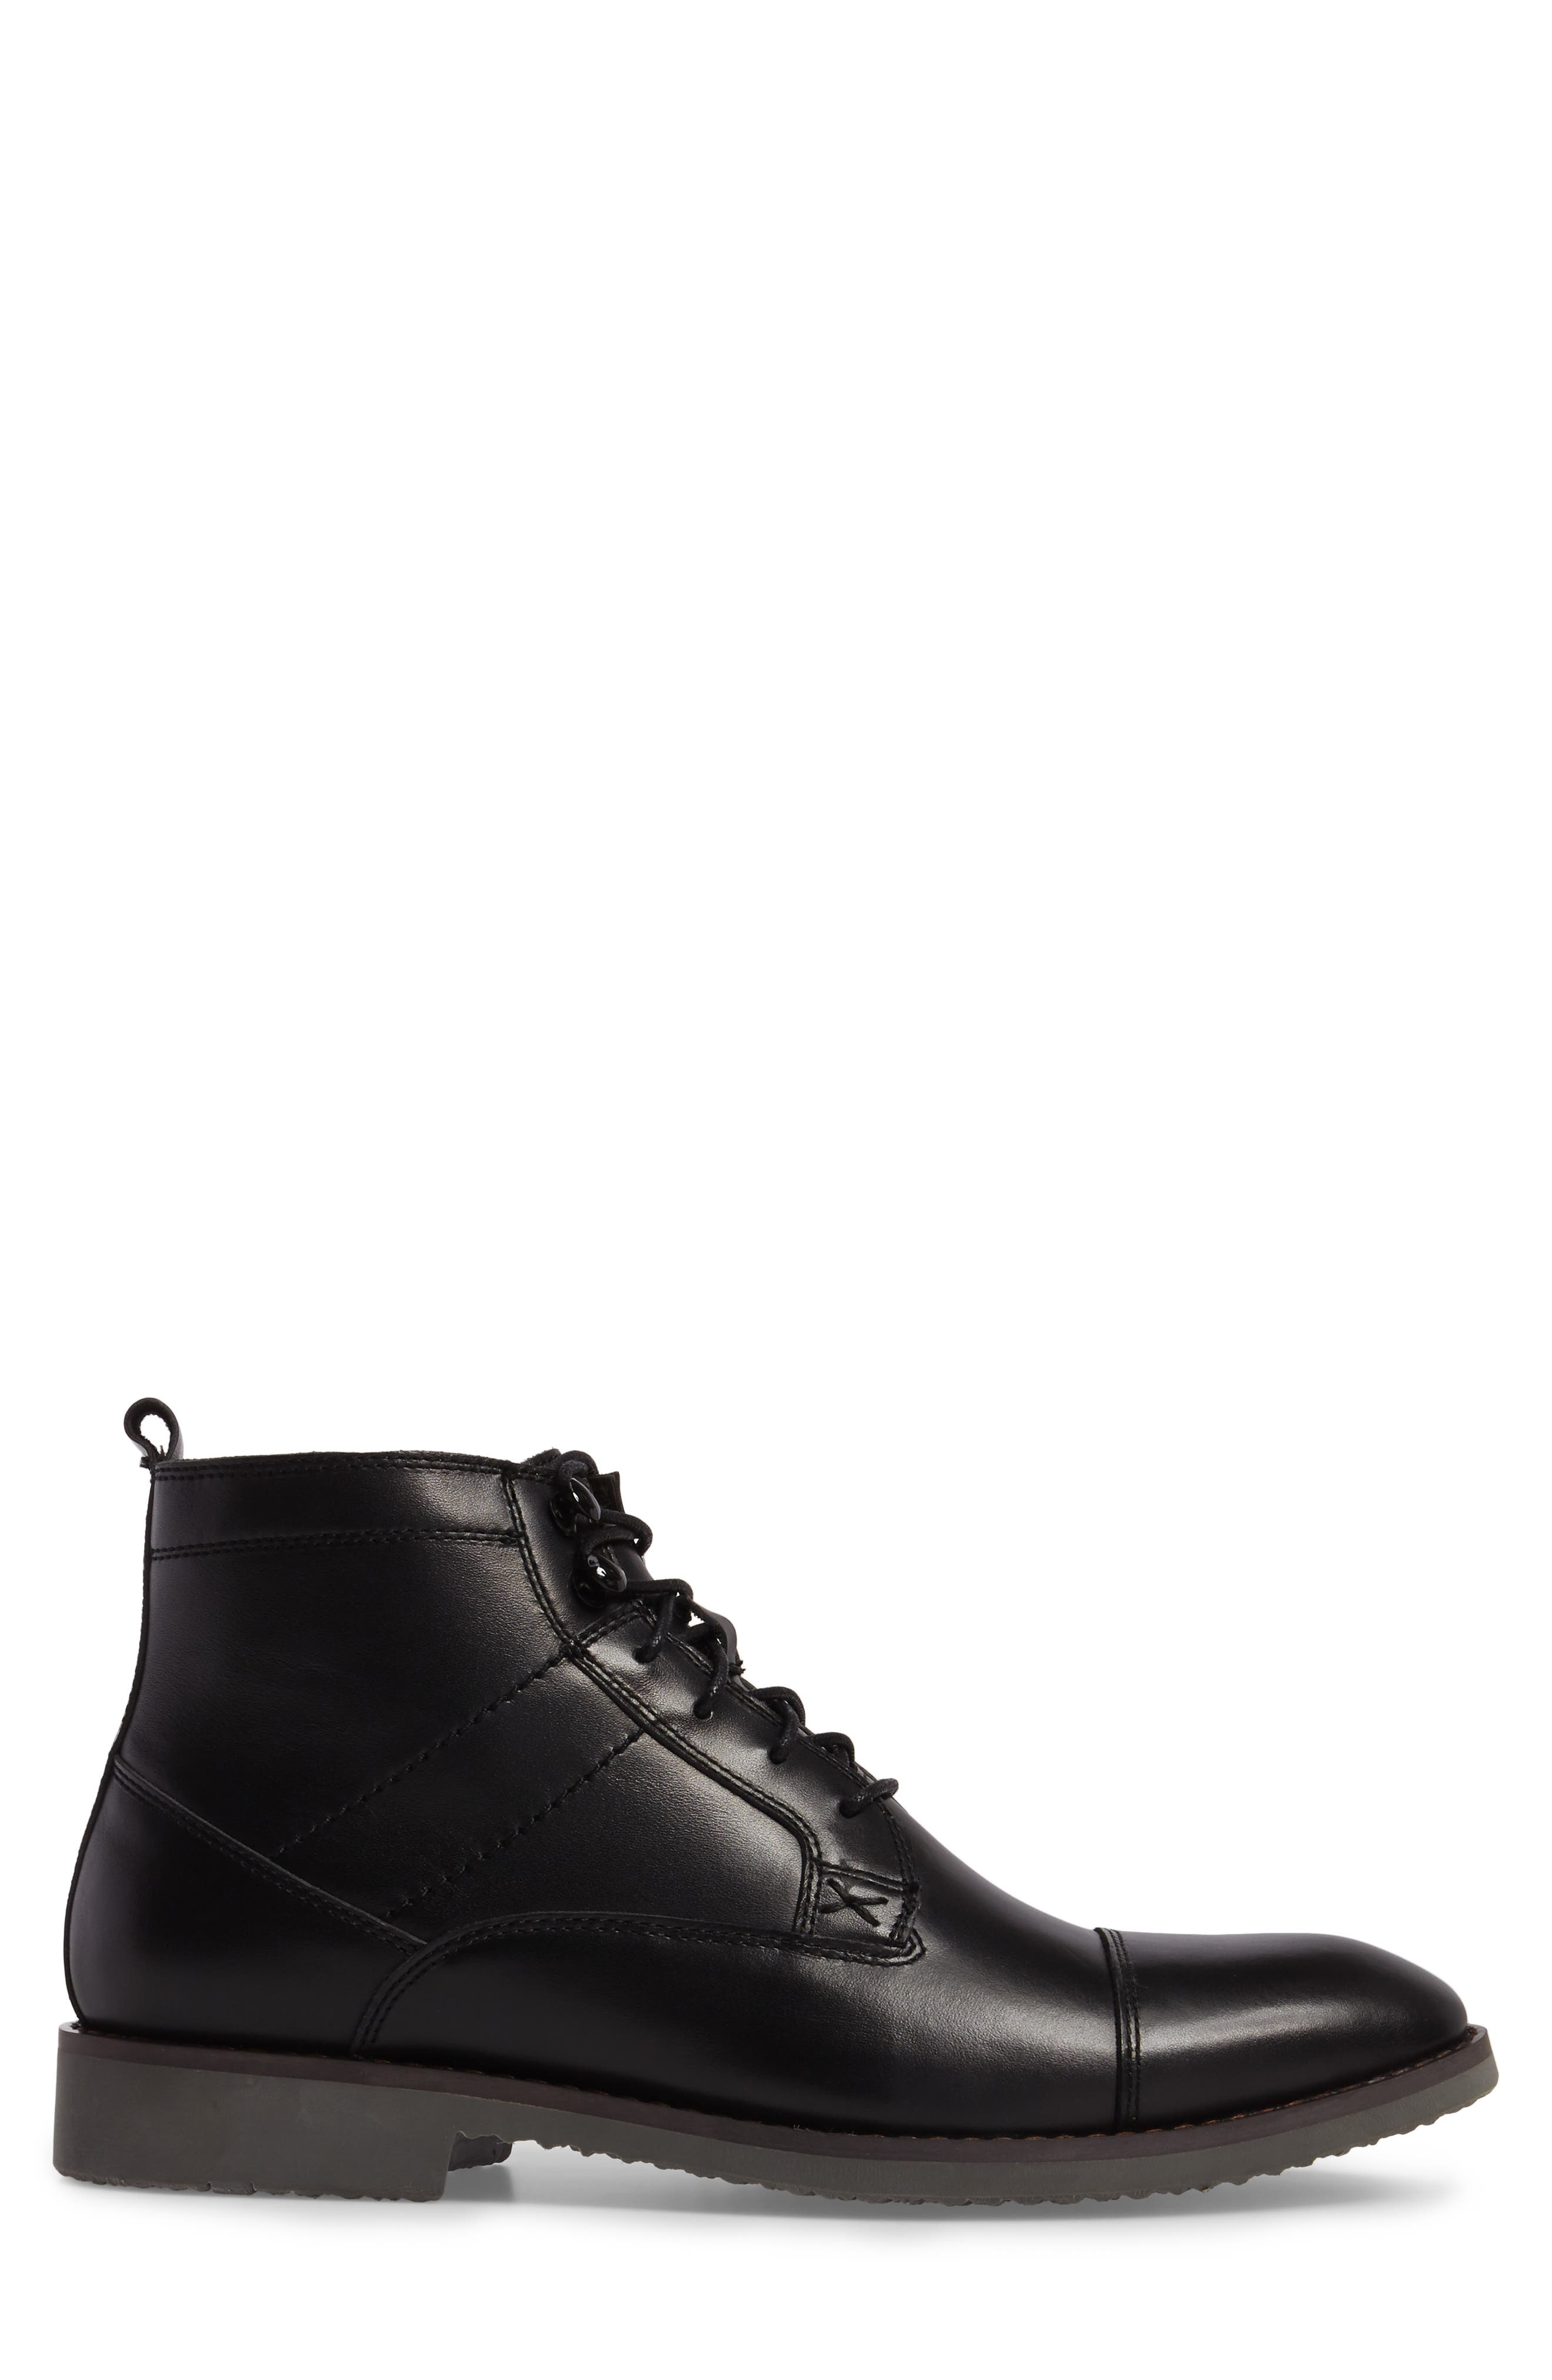 Alternate Image 3  - English Laundry Ensor Cap Toe Boot (Men)